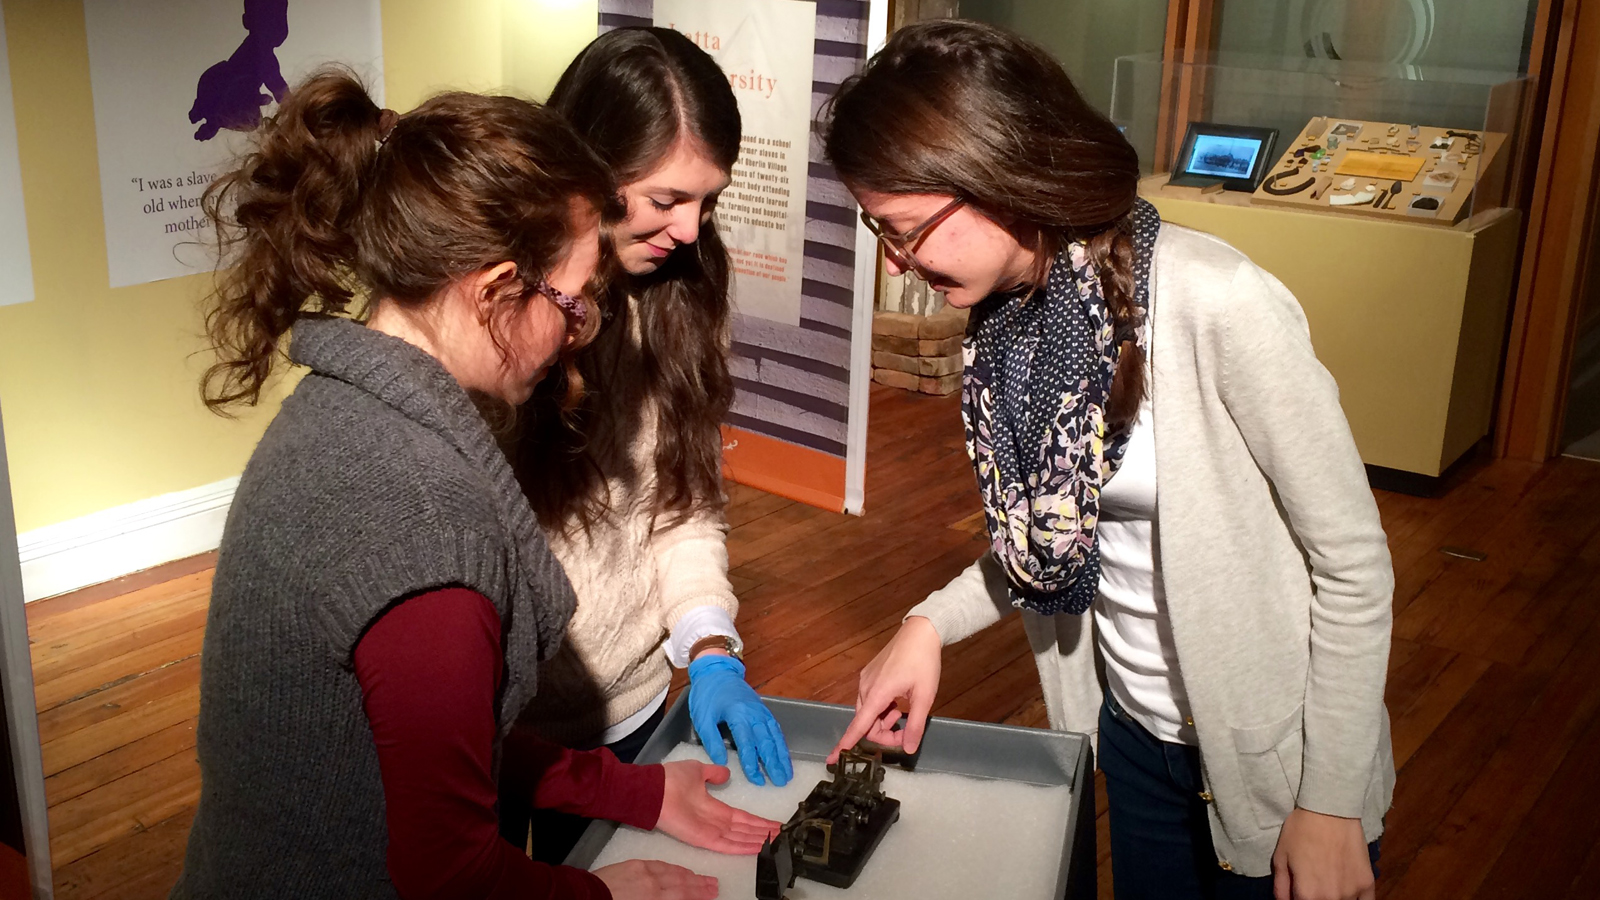 Students talk with museum patron